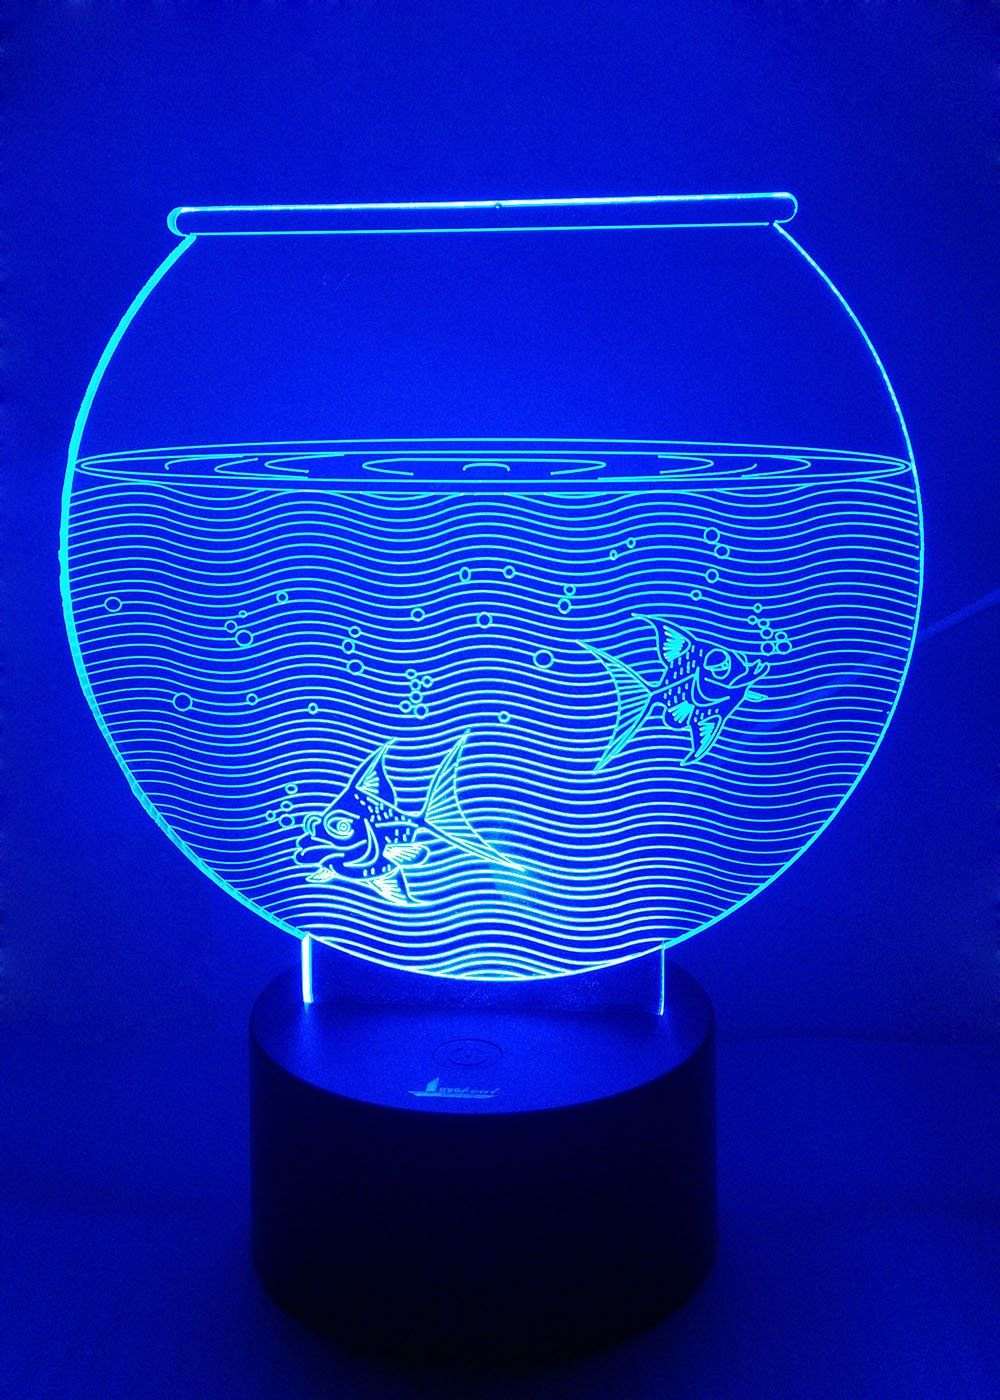 Loveboat Usb Powered 7 Colors Amazing Optical Illusion 3d Glow Led Lamp Art Sculpture Lights Produces Uniq Color Changing Lights 3d Night Light Led Night Light